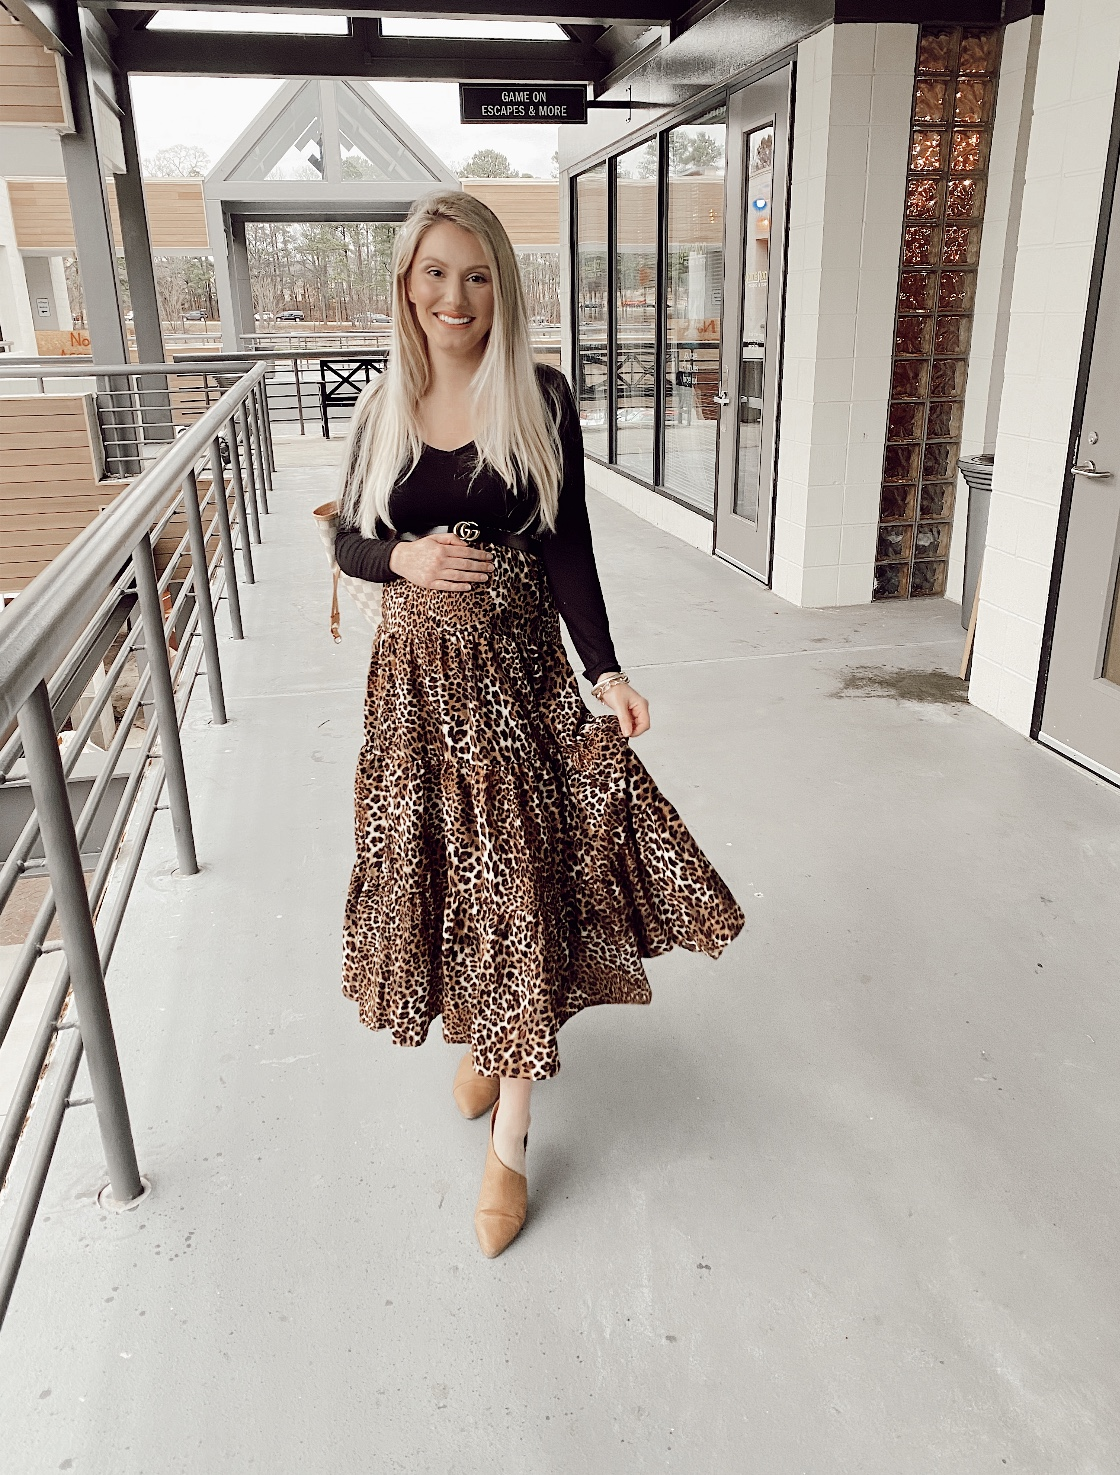 How To Wear A Non-Maternity Maxi Skirt While Pregnant by Jessica Linn. Pregnant North Carolina fashion blogger Jessica Linn wearing a long leopard print skirt, black long sleeve shirt, and wenda cut-out booties at Game on Escape Rooms.